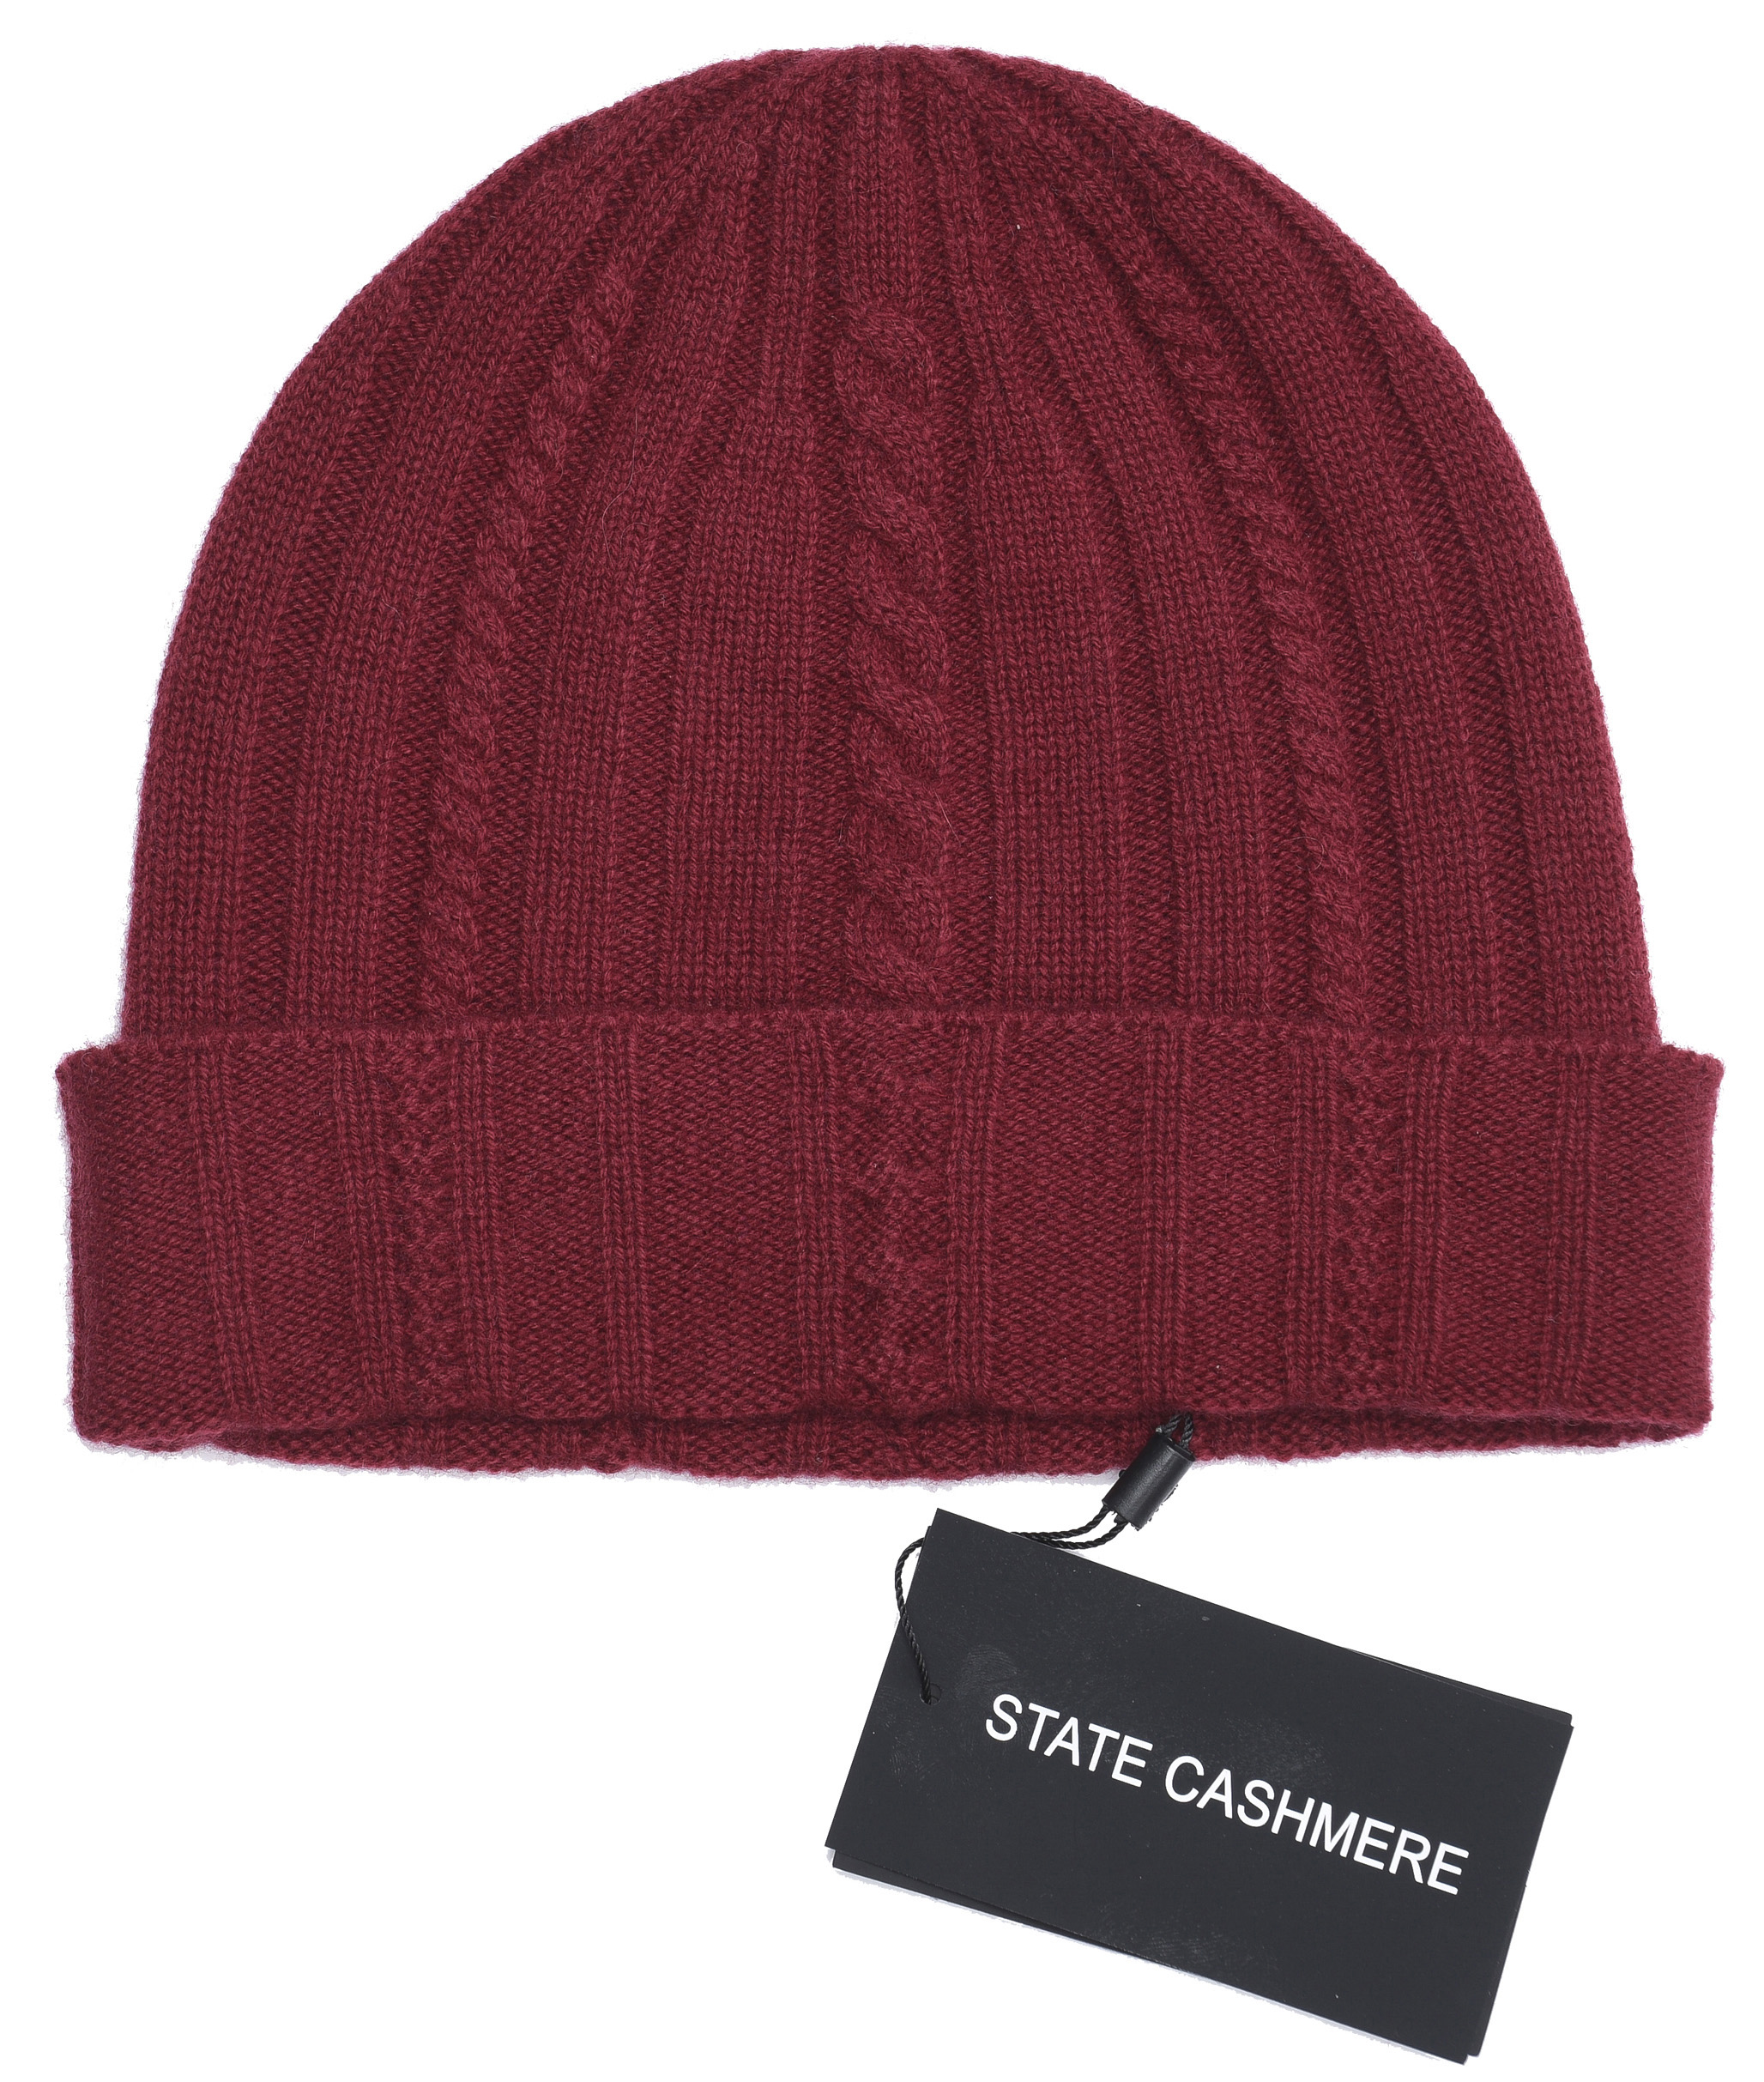 State Cashmere 100% Pure Cashmere Cable Knit Beanie Hat - Ultimate ... f486c7bef